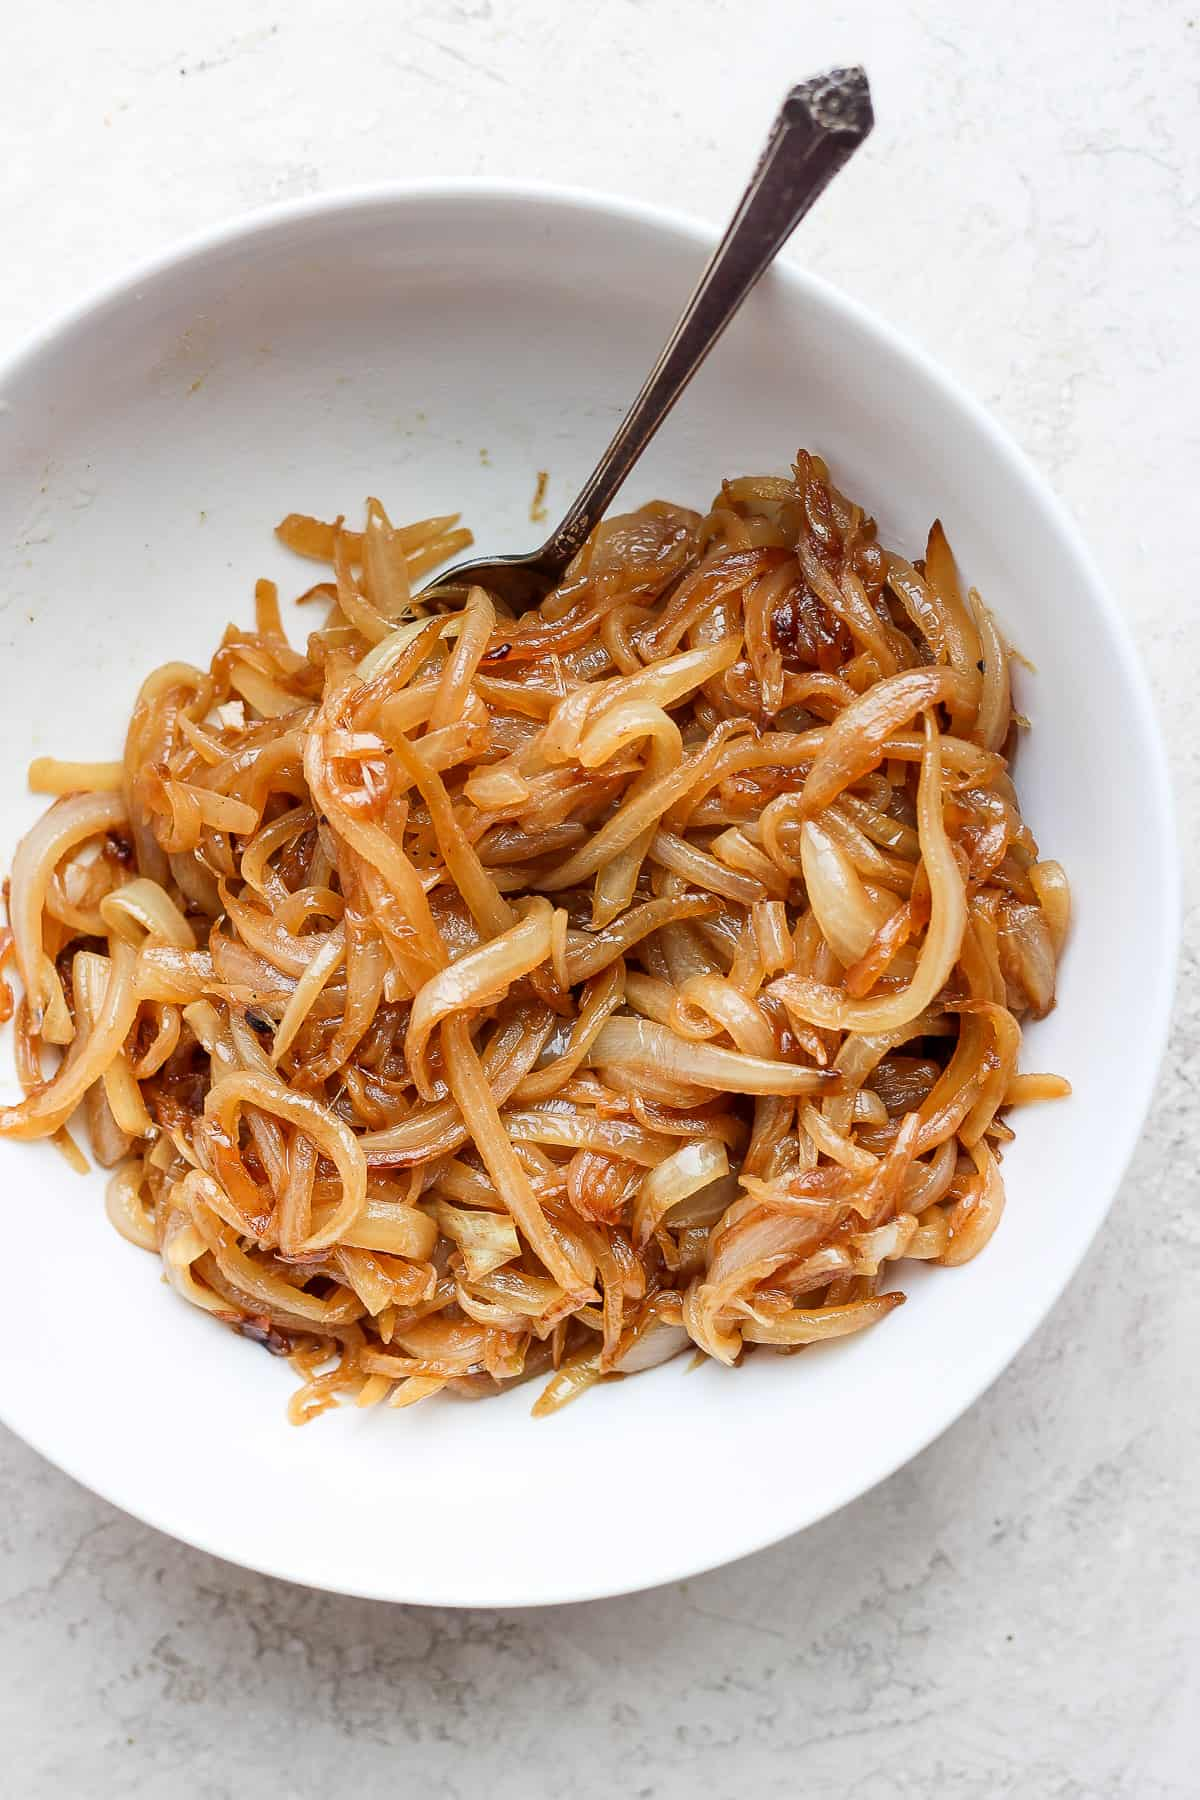 Caramelized onions in a white bowl